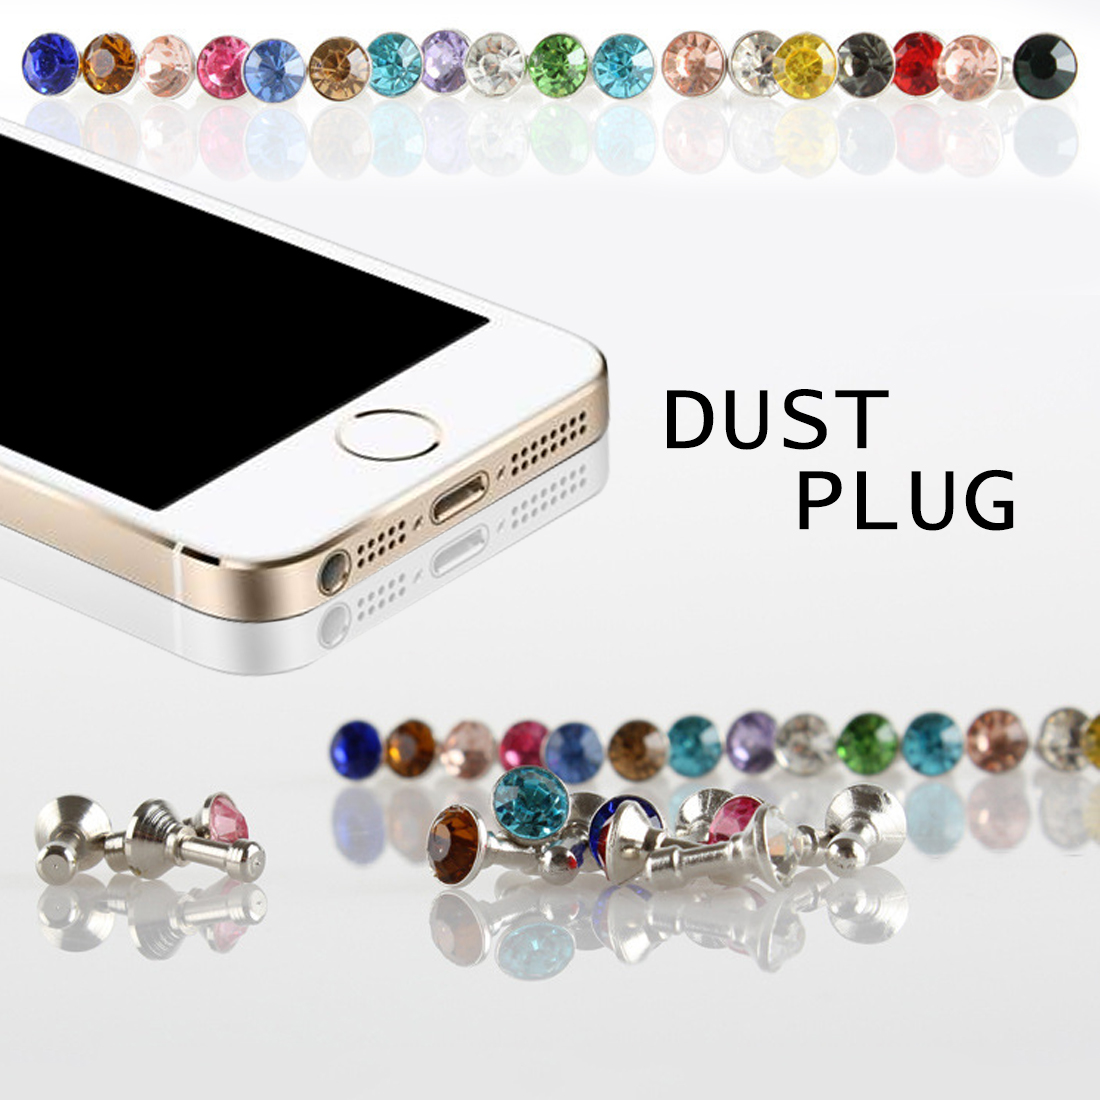 5 piece Universal 3.5mm Diamond Dust Plug Mobile Phone accessories gadgets Earphone Plugs For iPhone 5 5s 6 6s